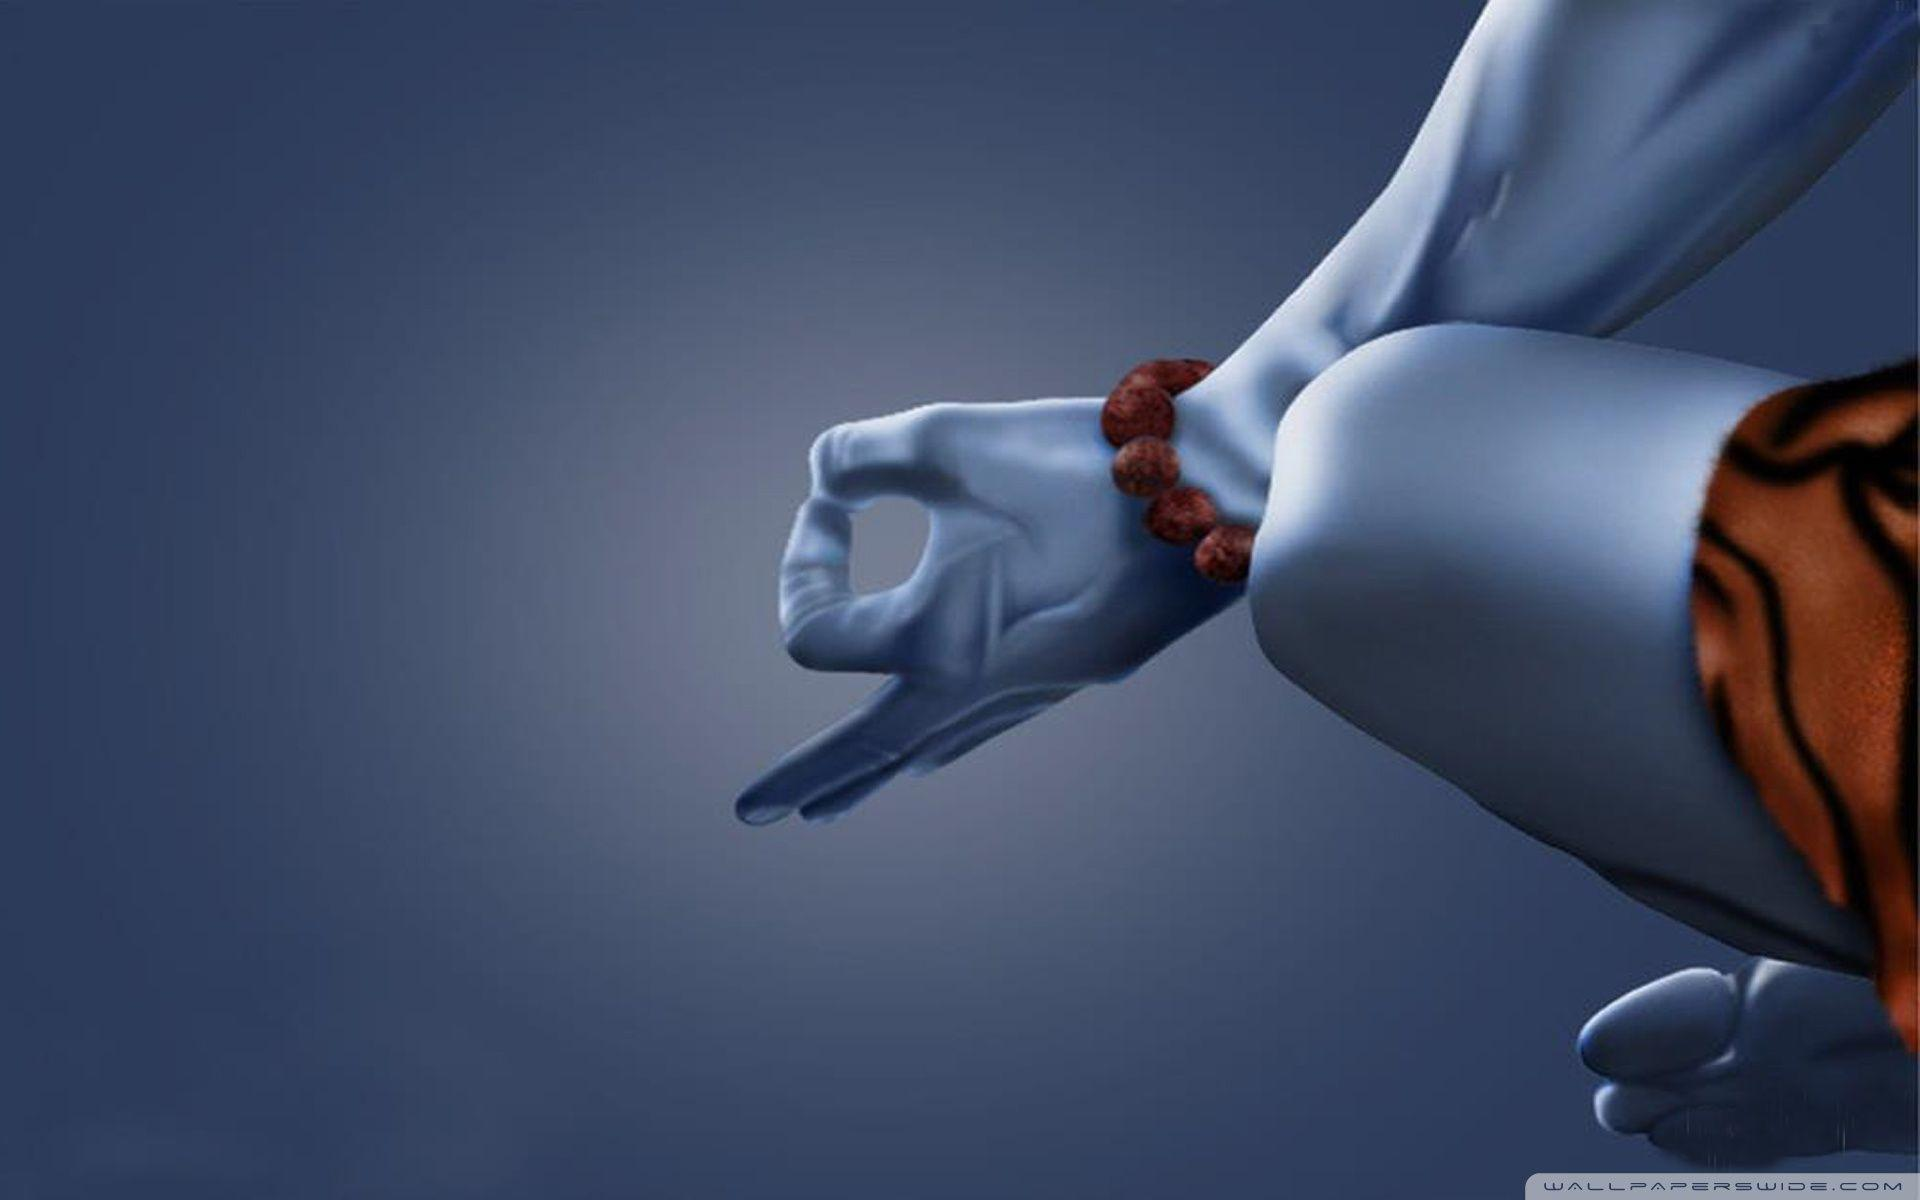 The Destroyer Shiva Hd Wallpaper For Free Download Desktop: Lord Shiva 3D Wallpapers